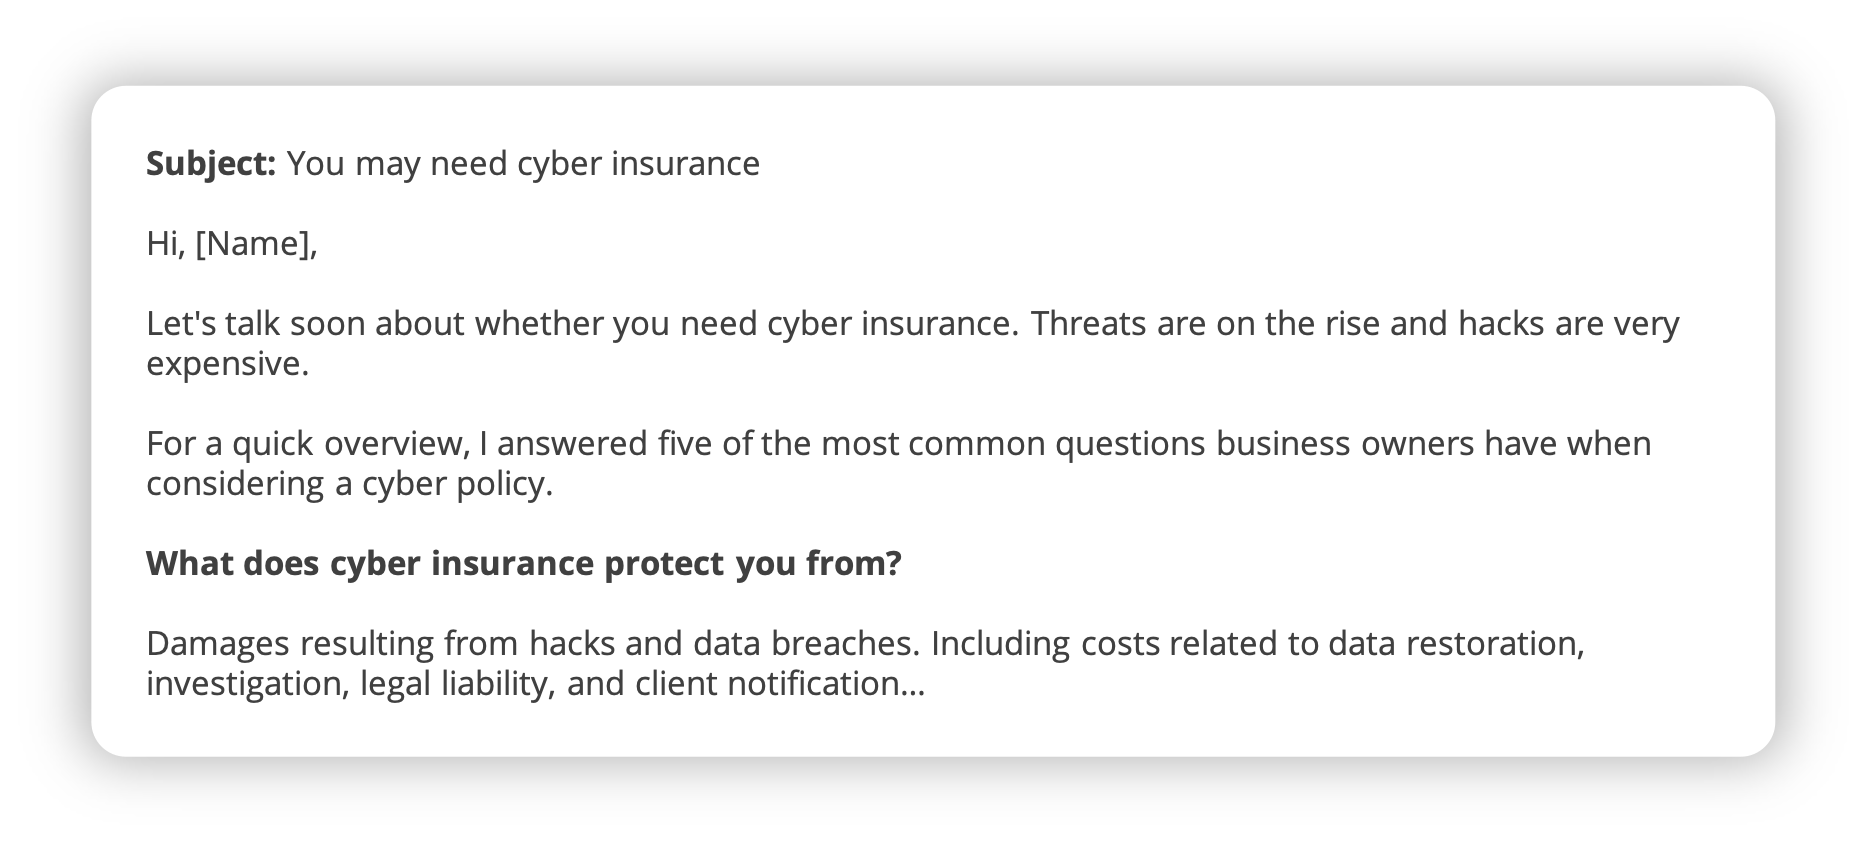 cyber liability insurance cross-sell email template